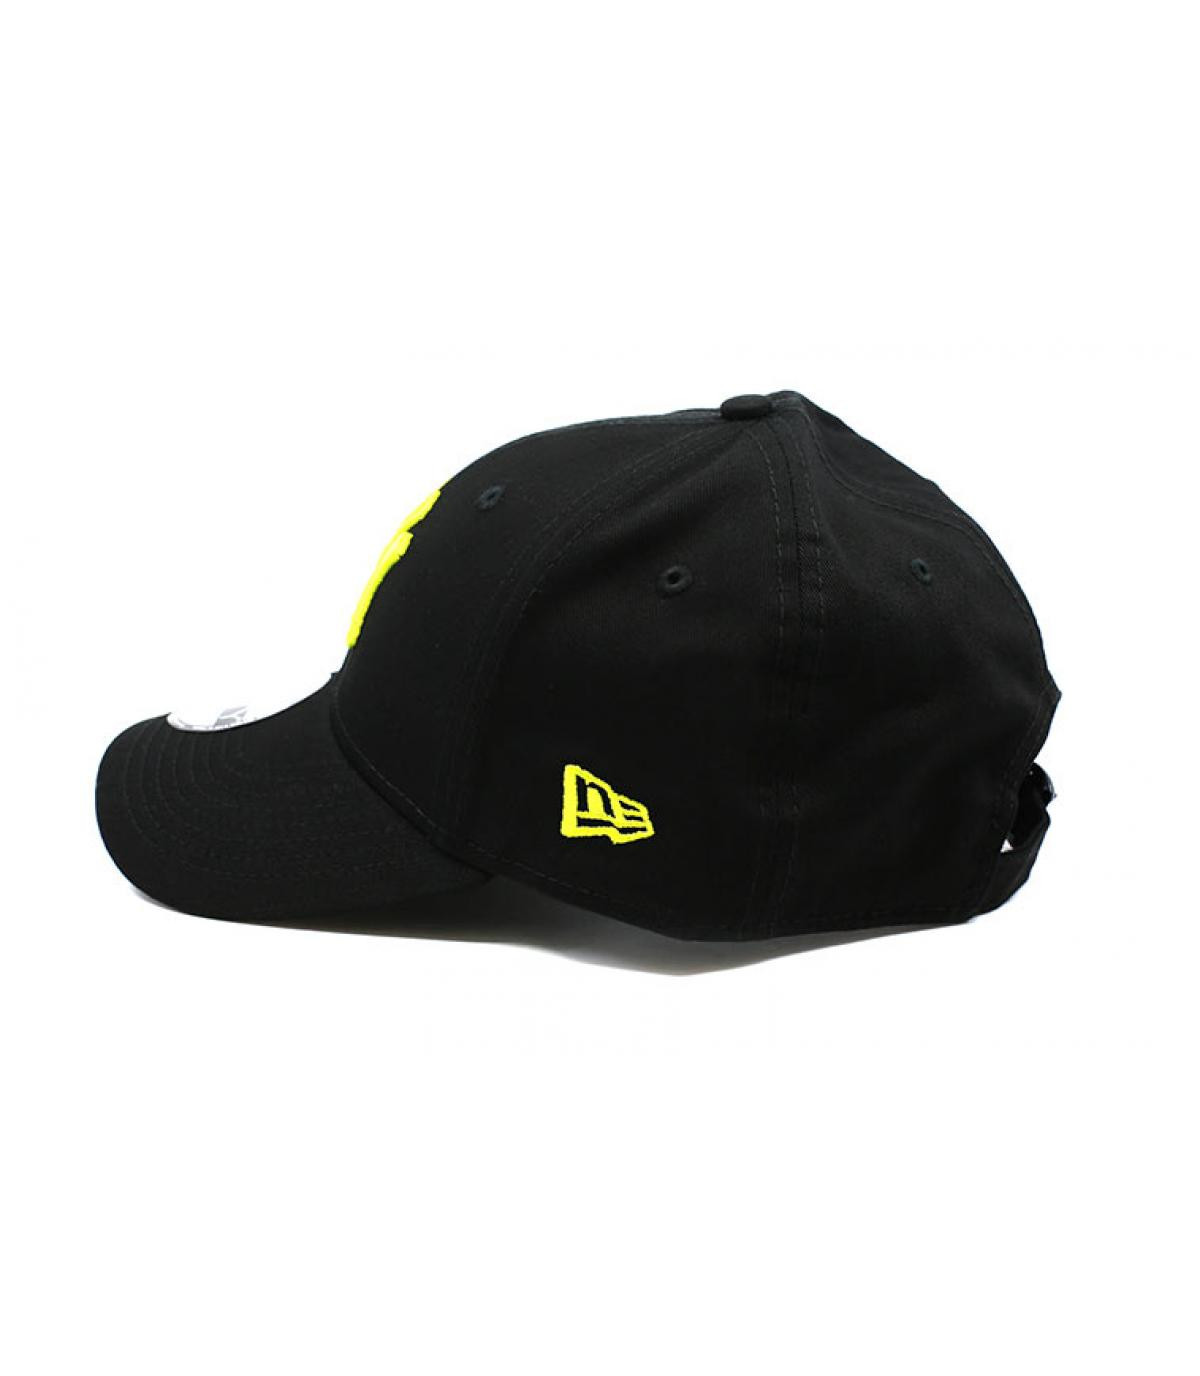 Details Cap League Ess NY 9Forty black cyber green - Abbildung 4